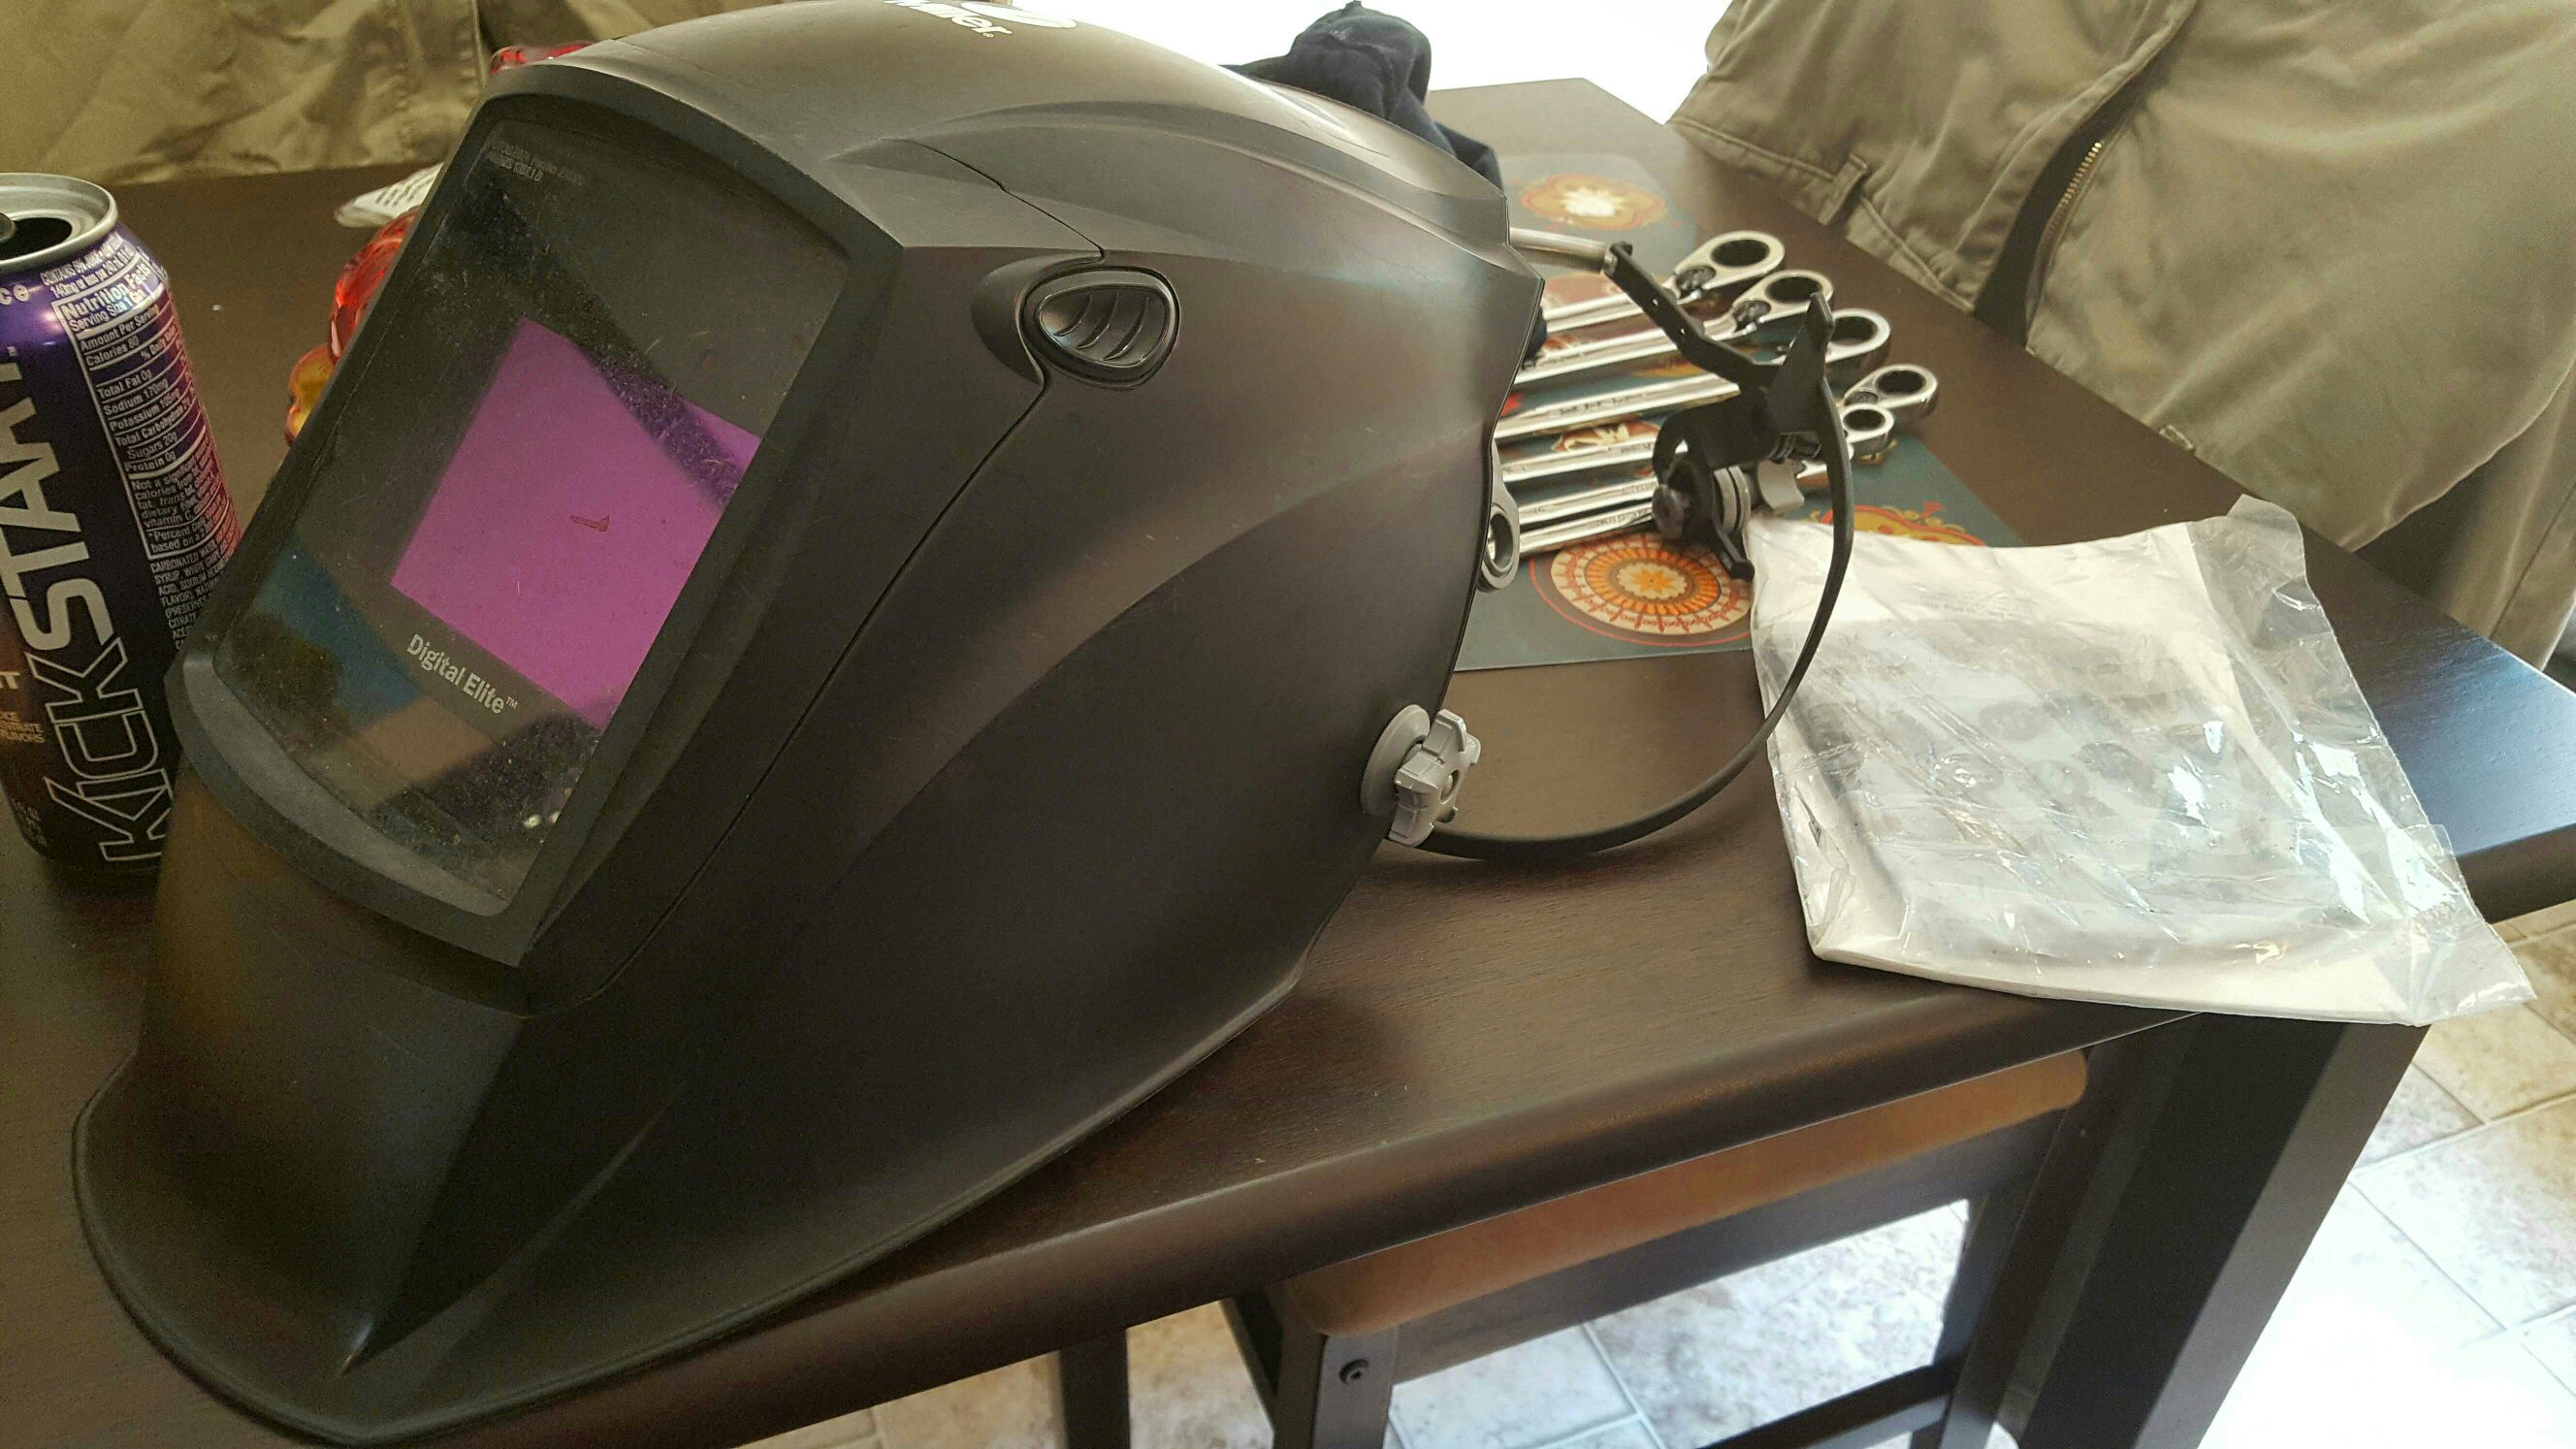 Miller digital elite kit, iron workers harness and some hand tools